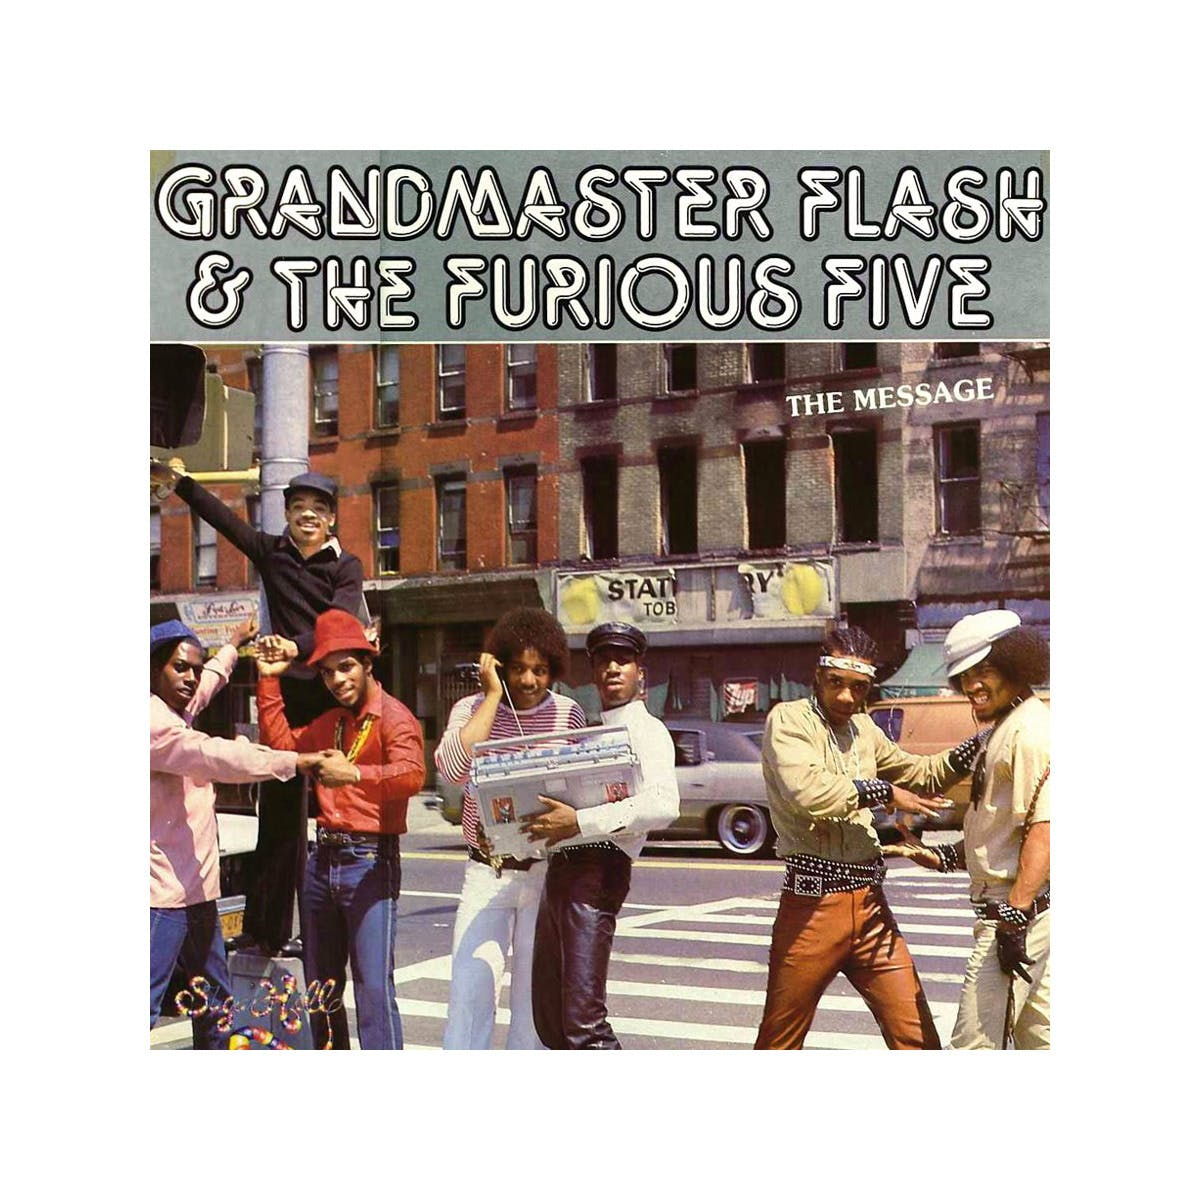 The Message by Grandmaster Flash and The Furious Five